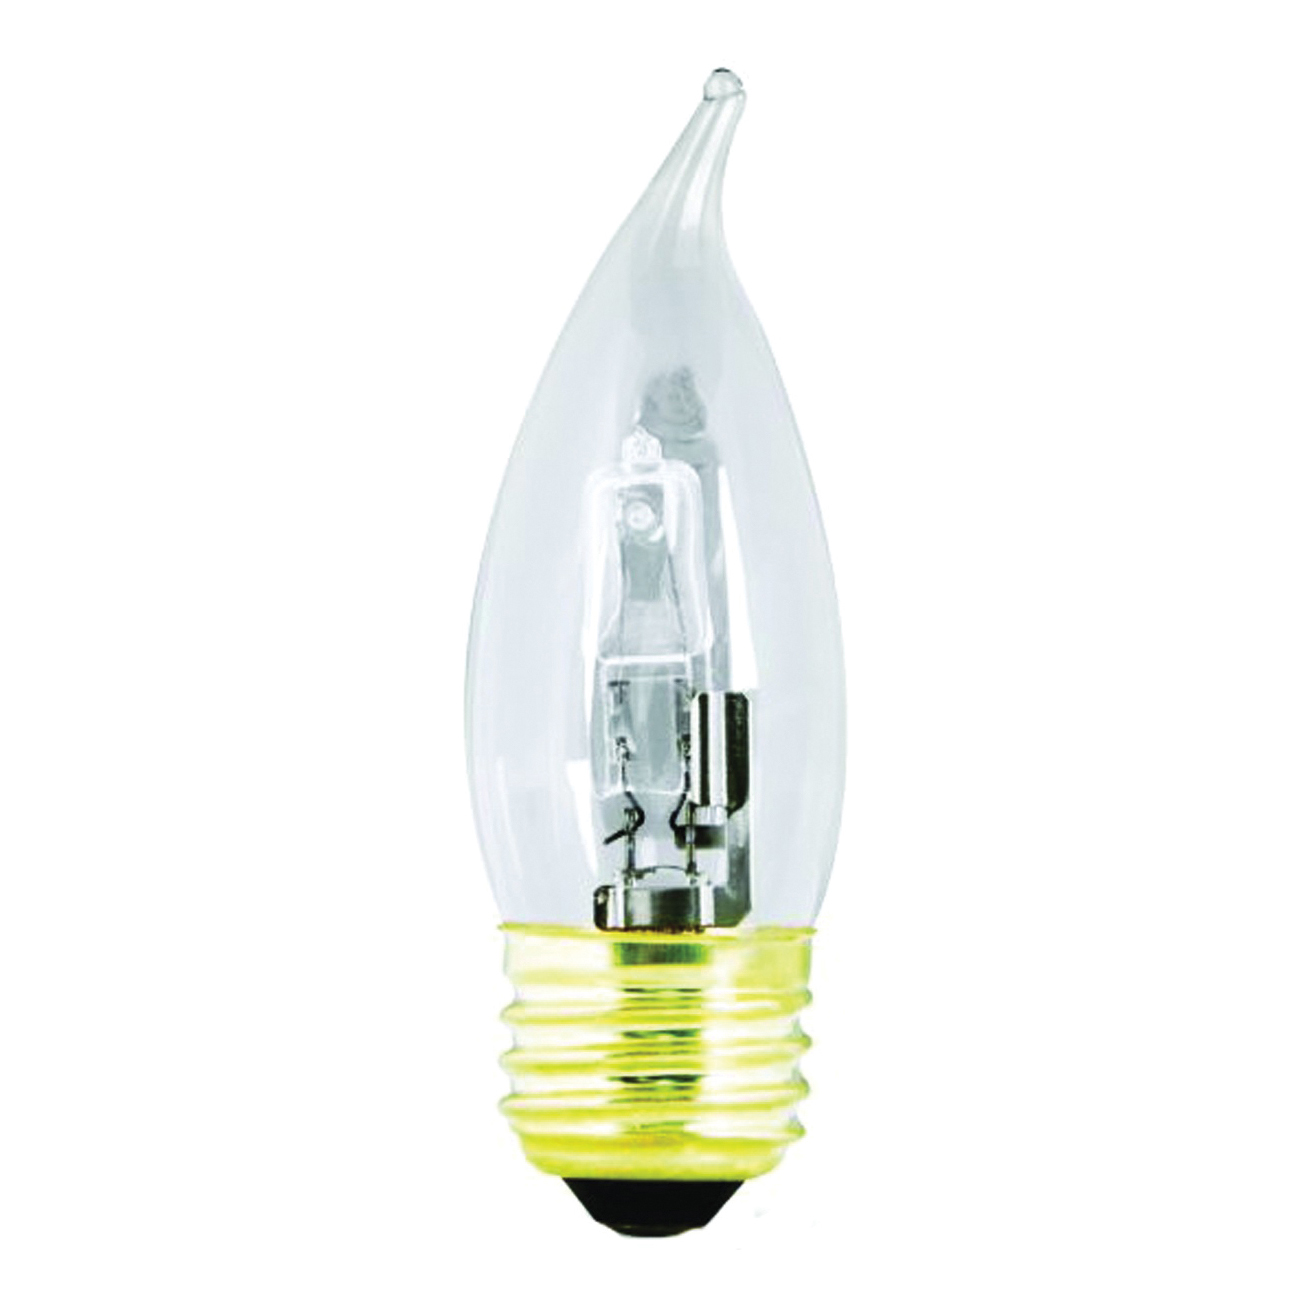 Picture of Feit Electric BPQ40EFC/2 Halogen Lamp, 40 W, Medium E26 Lamp Base, Flame Tip Lamp, 600 Lumens, 3000 K Color Temp